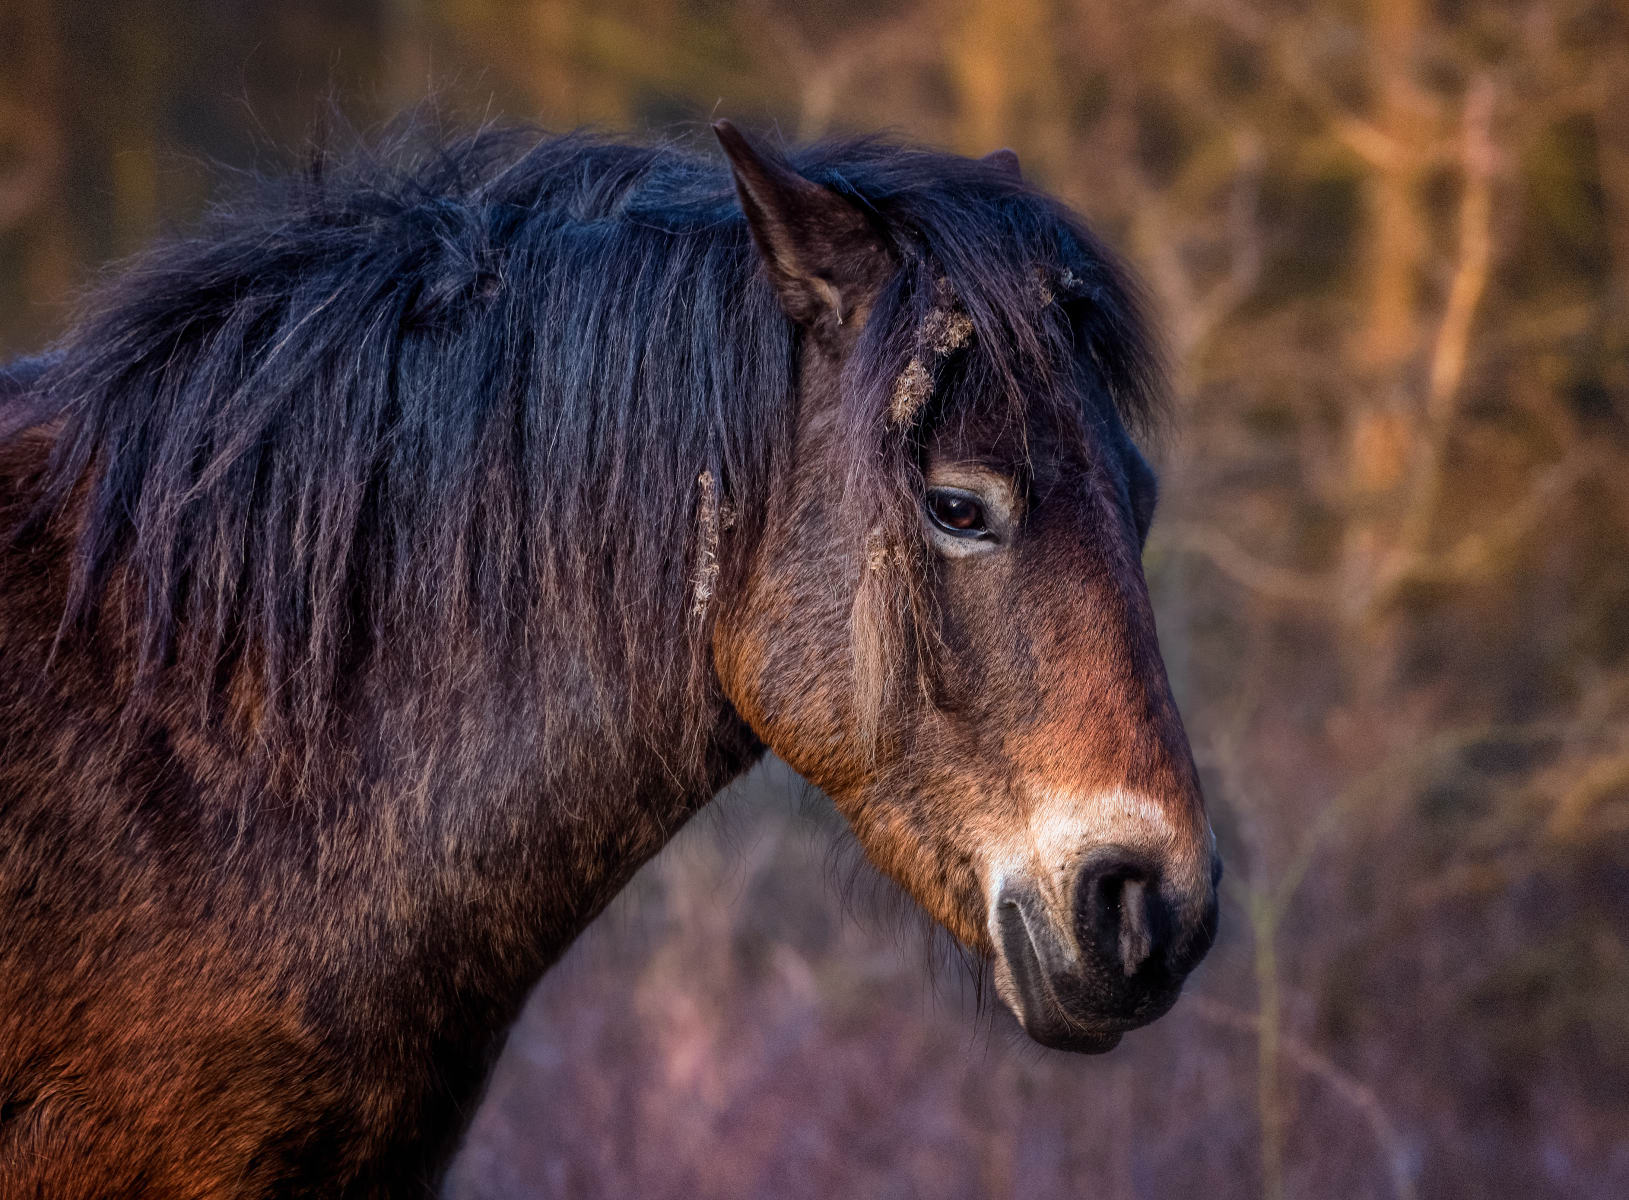 Horse with Decorated Side Whiskers